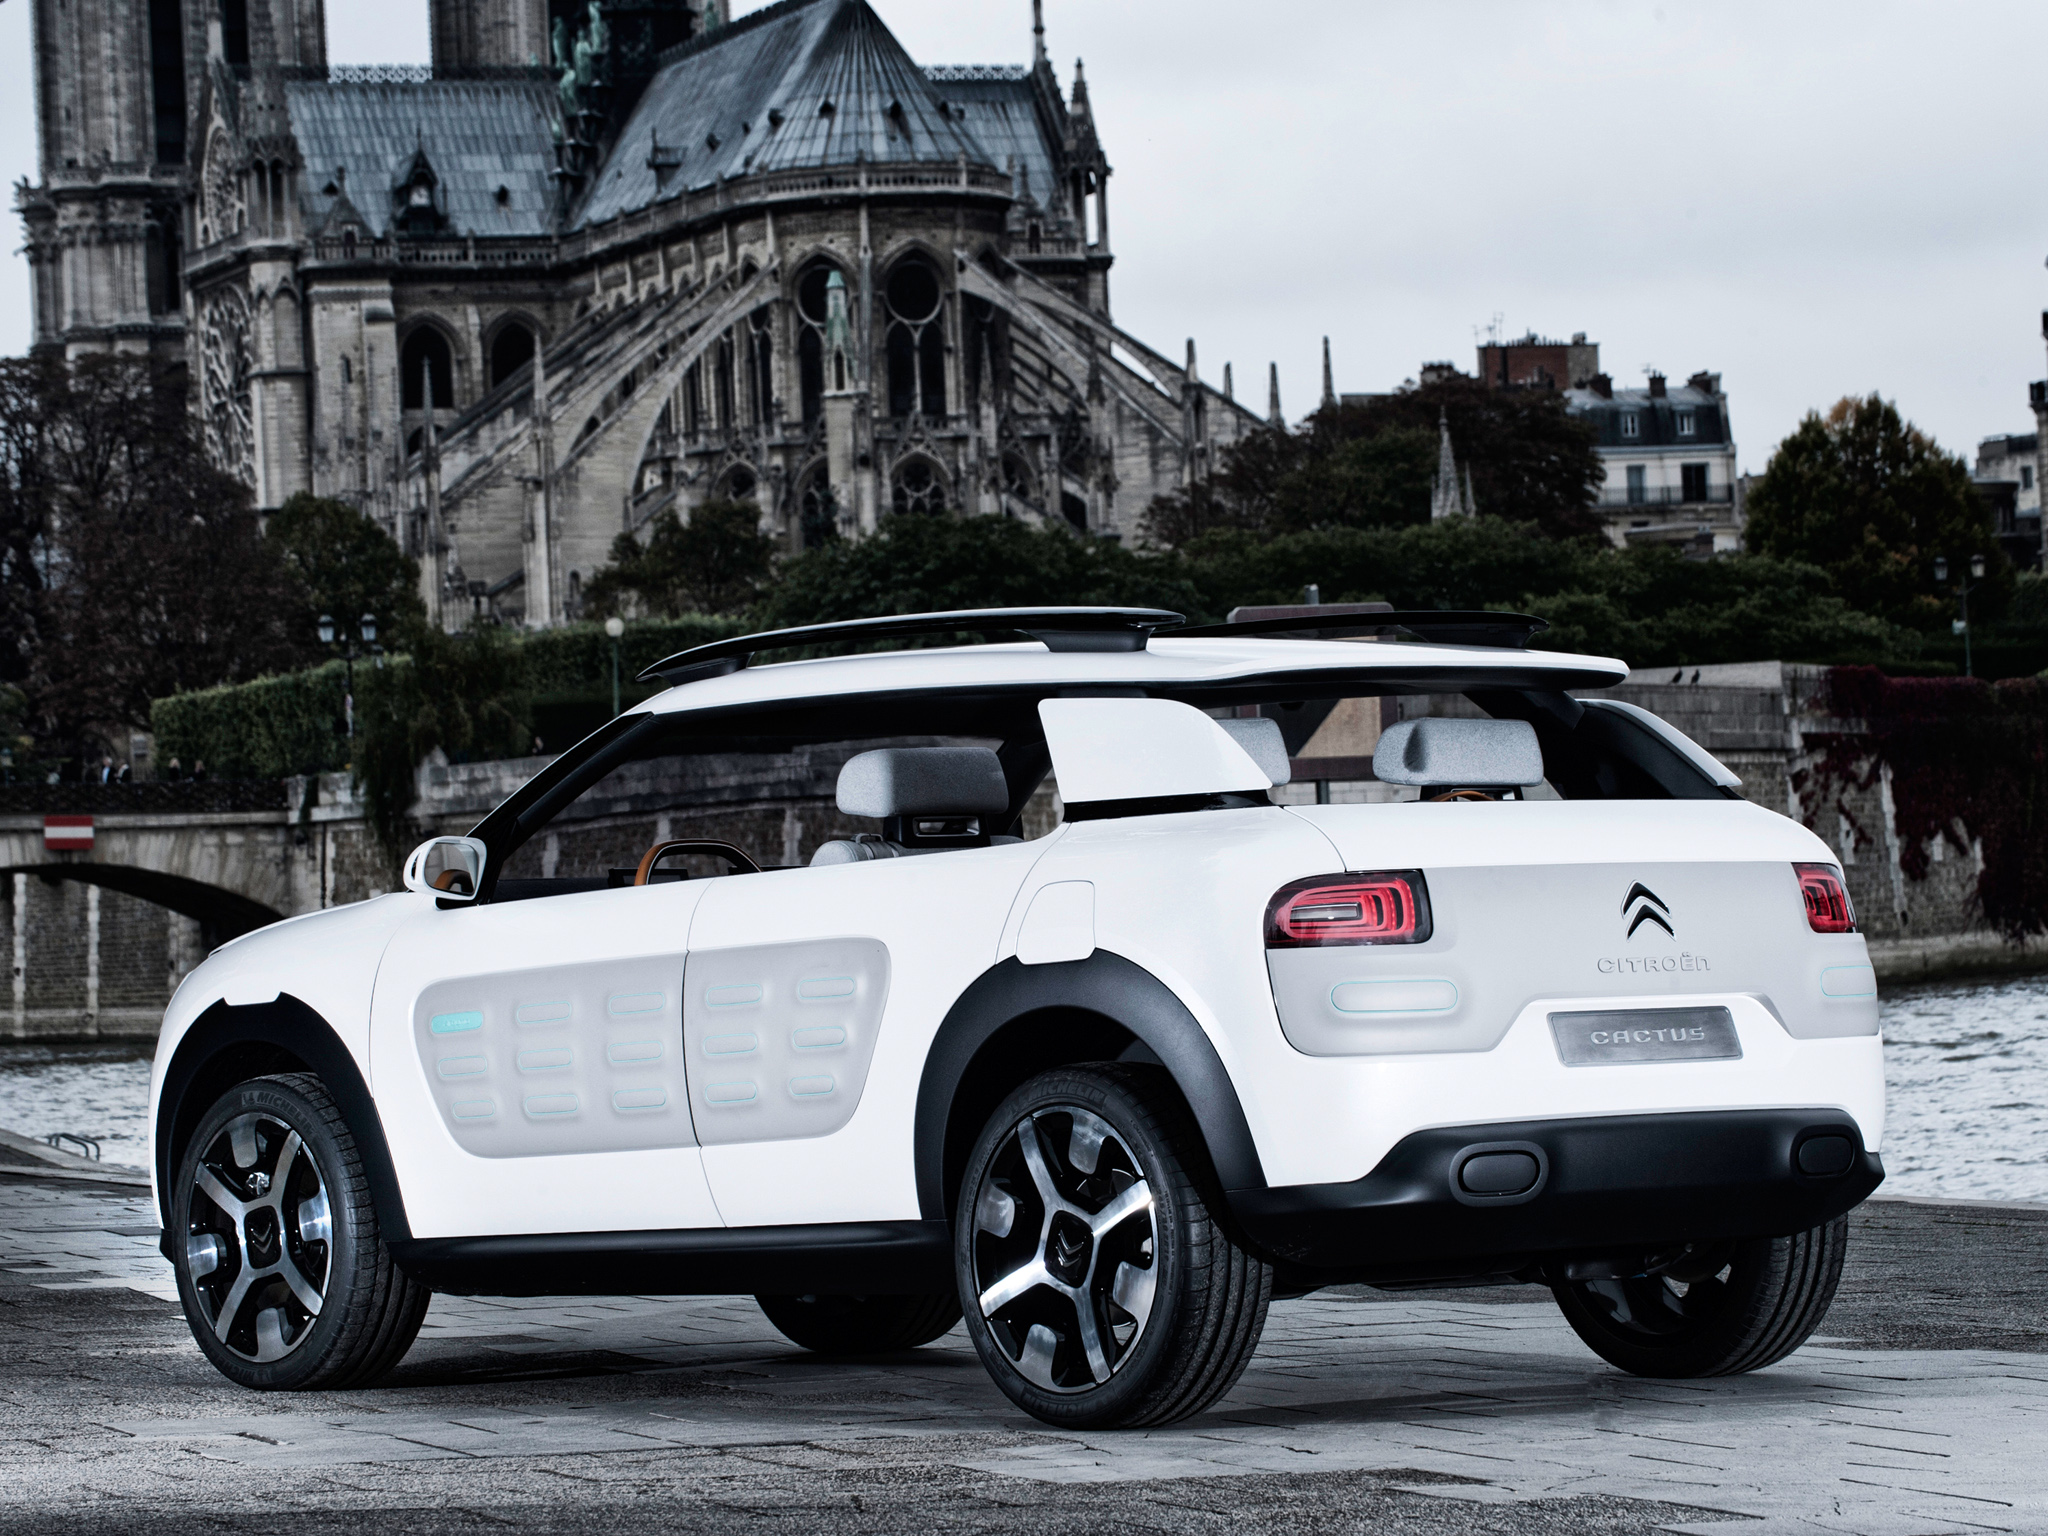 2013 citroen cactus concept r wallpaper 2048x1536 206919 wallpaperup. Black Bedroom Furniture Sets. Home Design Ideas